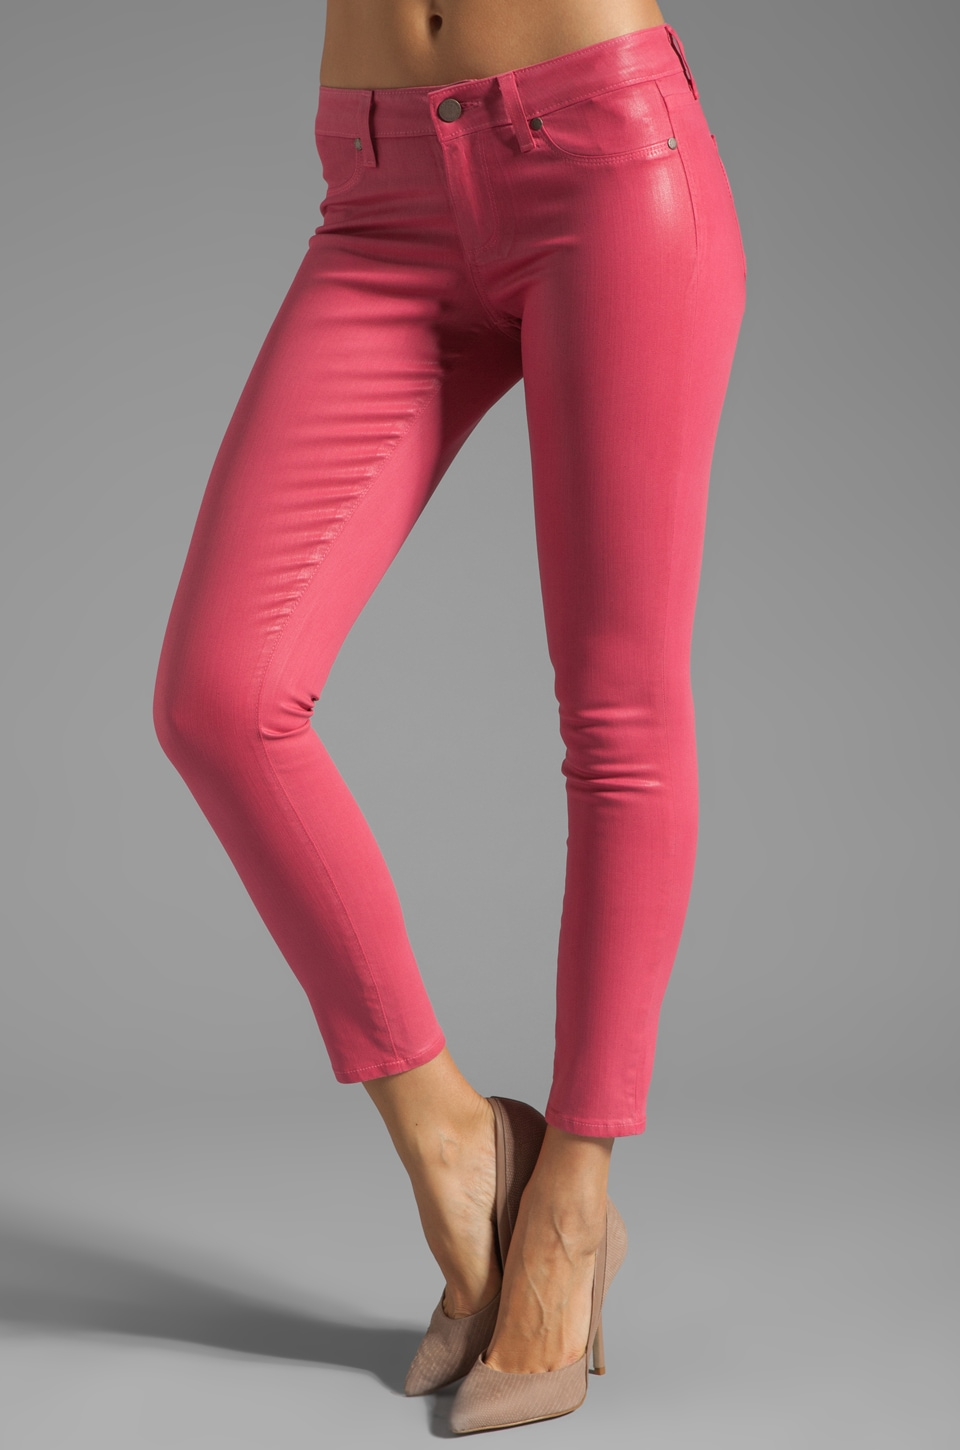 Paige Denim Verdugo Silk Coated Ankle in Watermelon